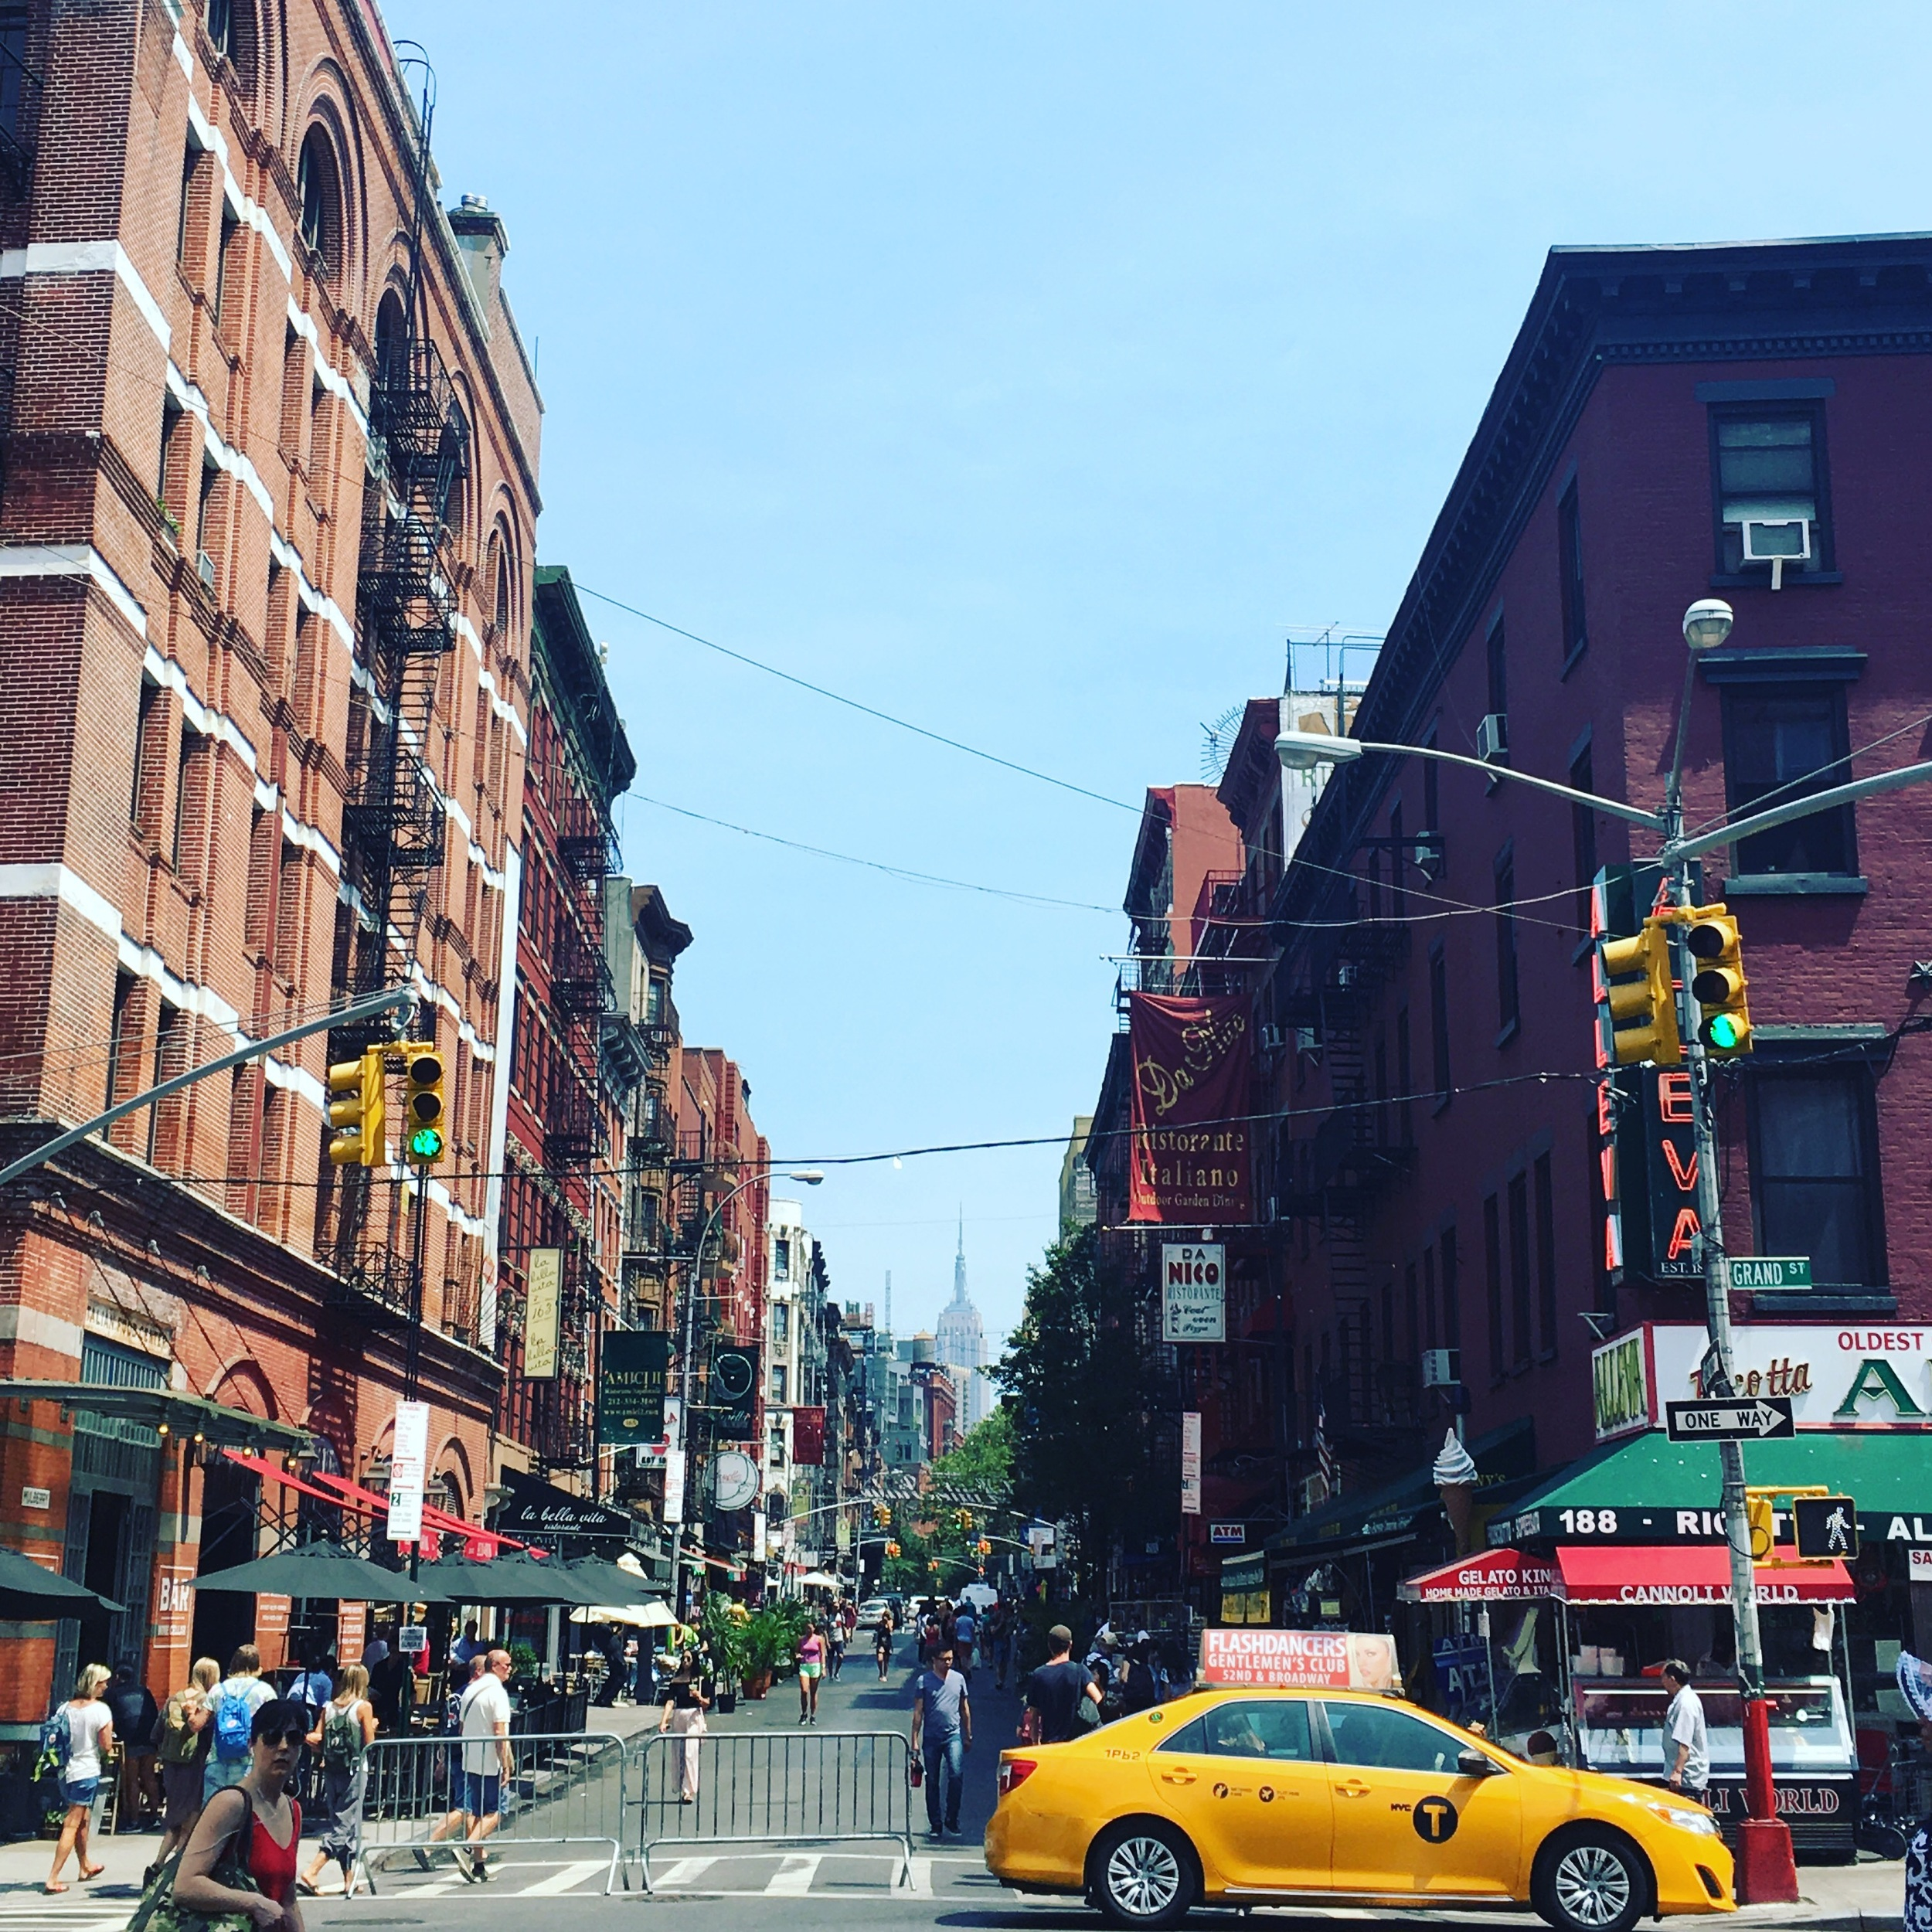 The view looking up to the Empire State building from China Town into Little Italy.